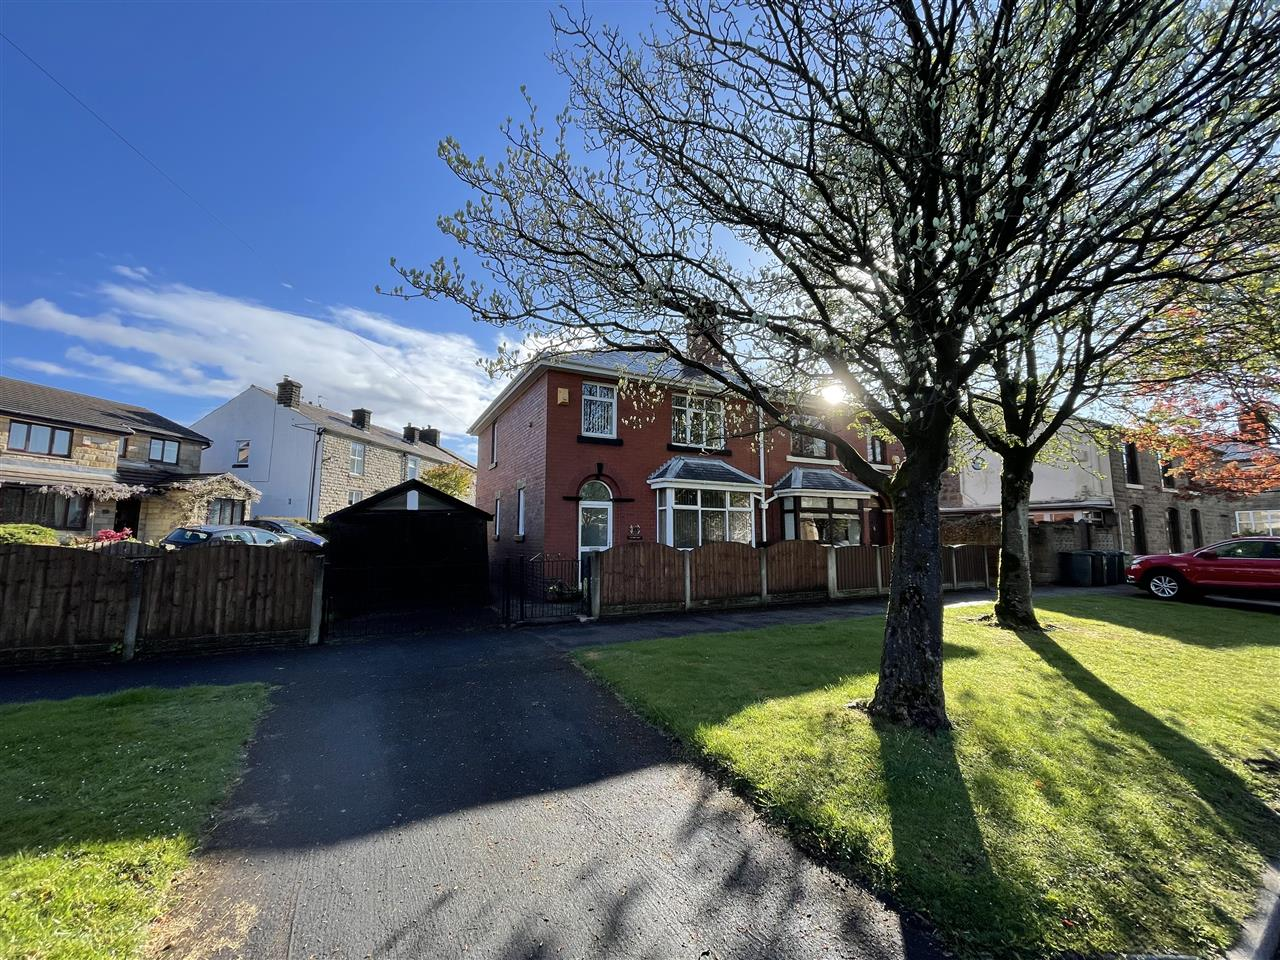 3 bed semi-detached for sale in Fielding Place, Anderton - Property Image 1